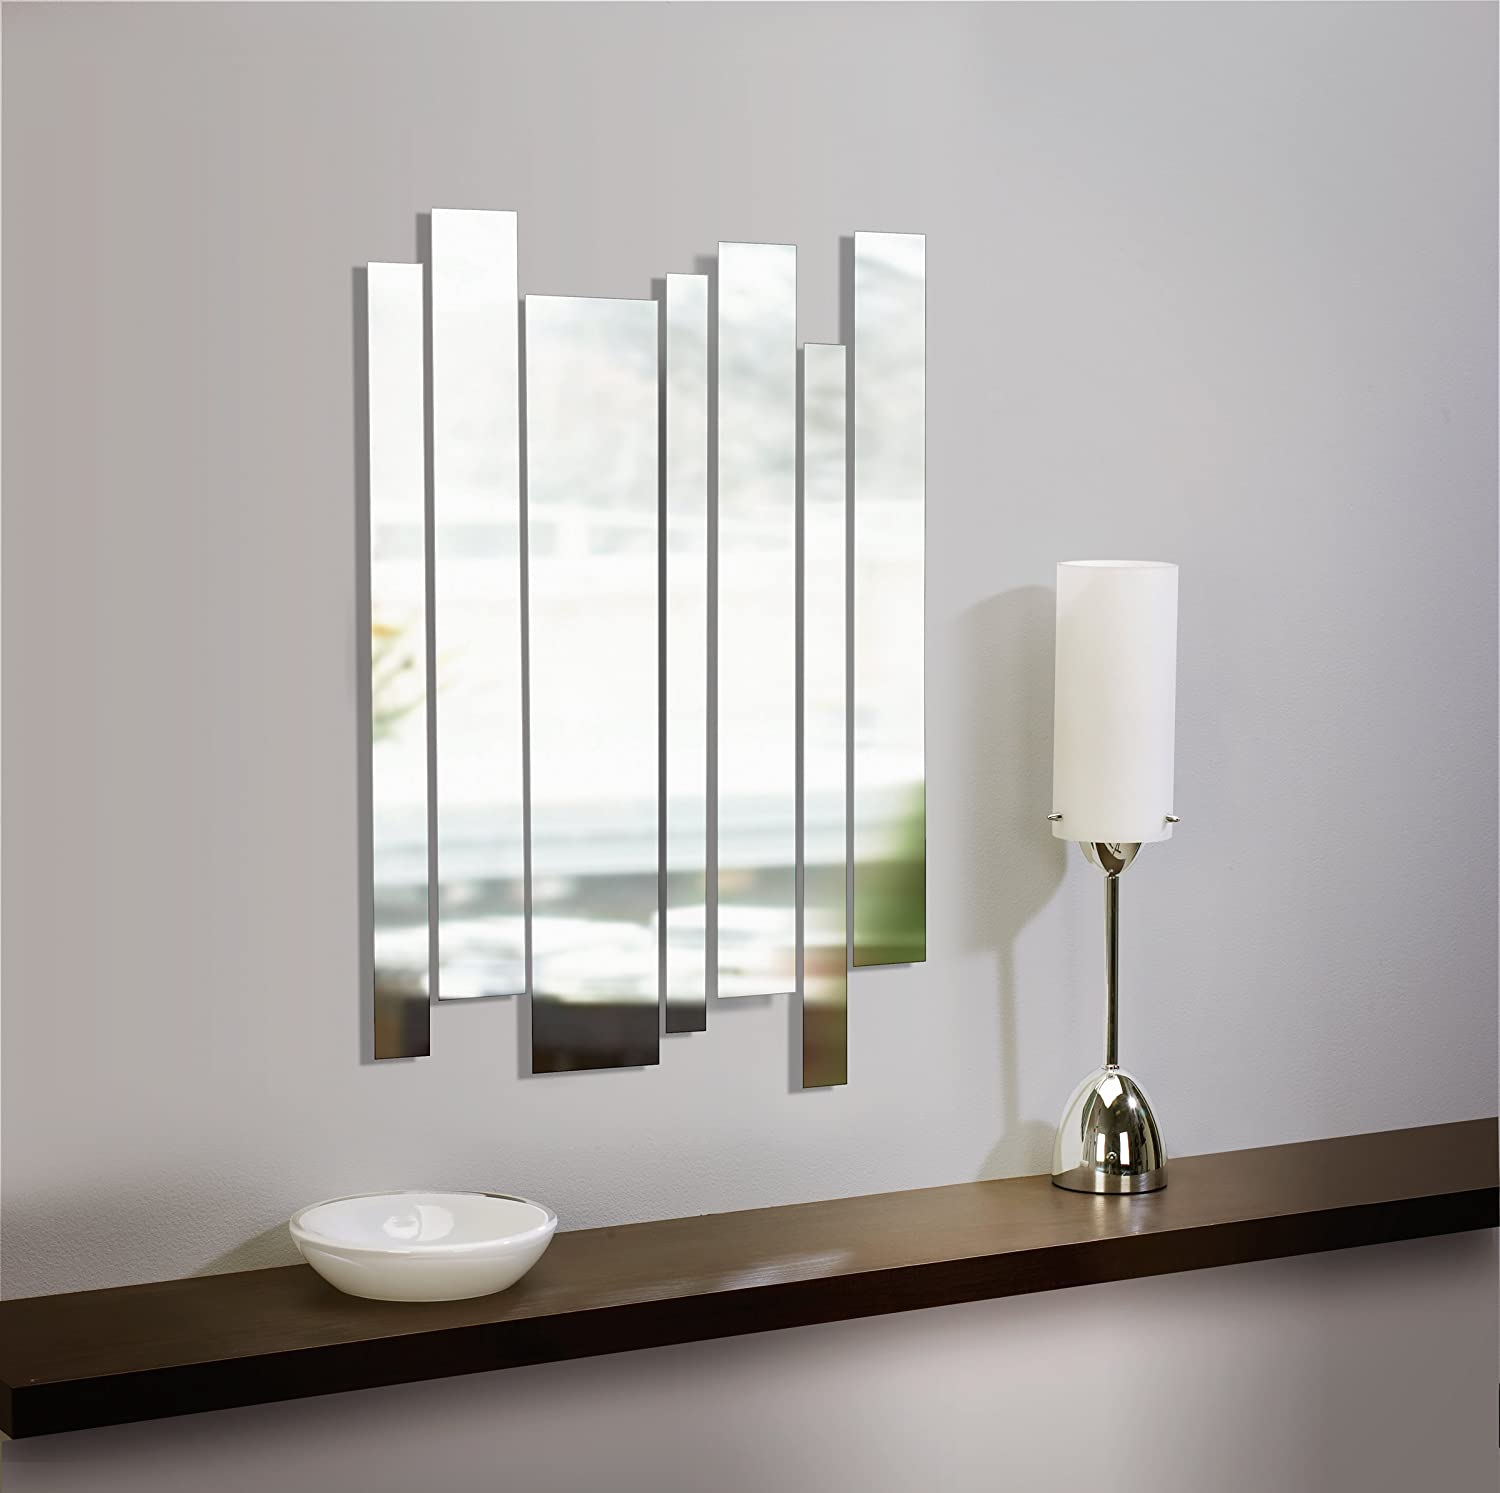 Umbra strip wall mount mirrors set of 7 new free - Decoration miroir mural ...